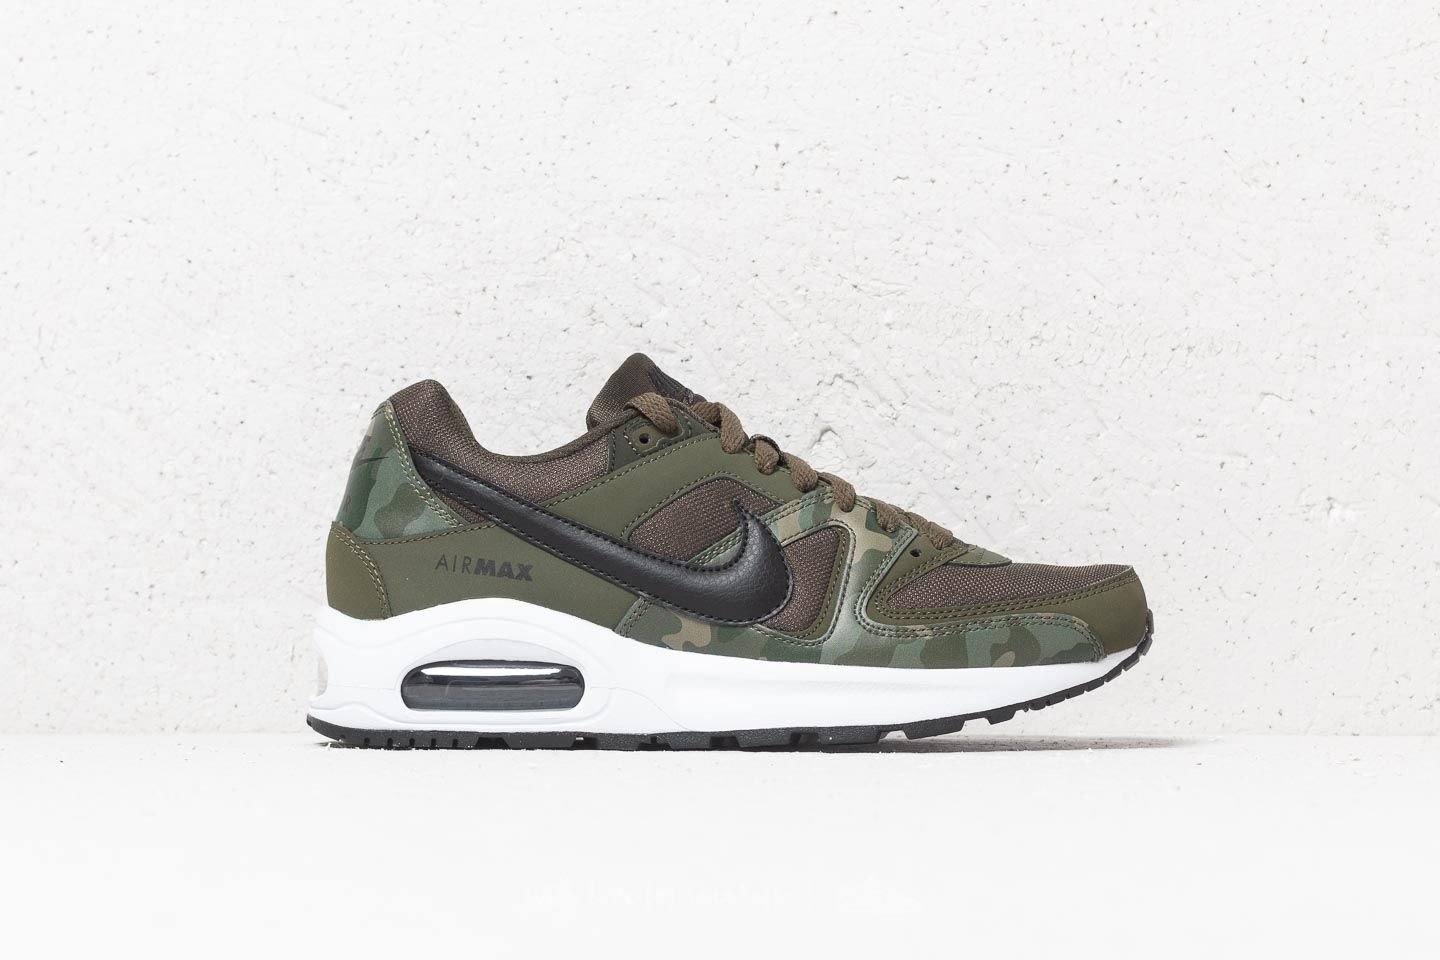 Nike Air Max Command Flex BG Sequoia  Black-White at a great price 99 7d32c4c6a4e54